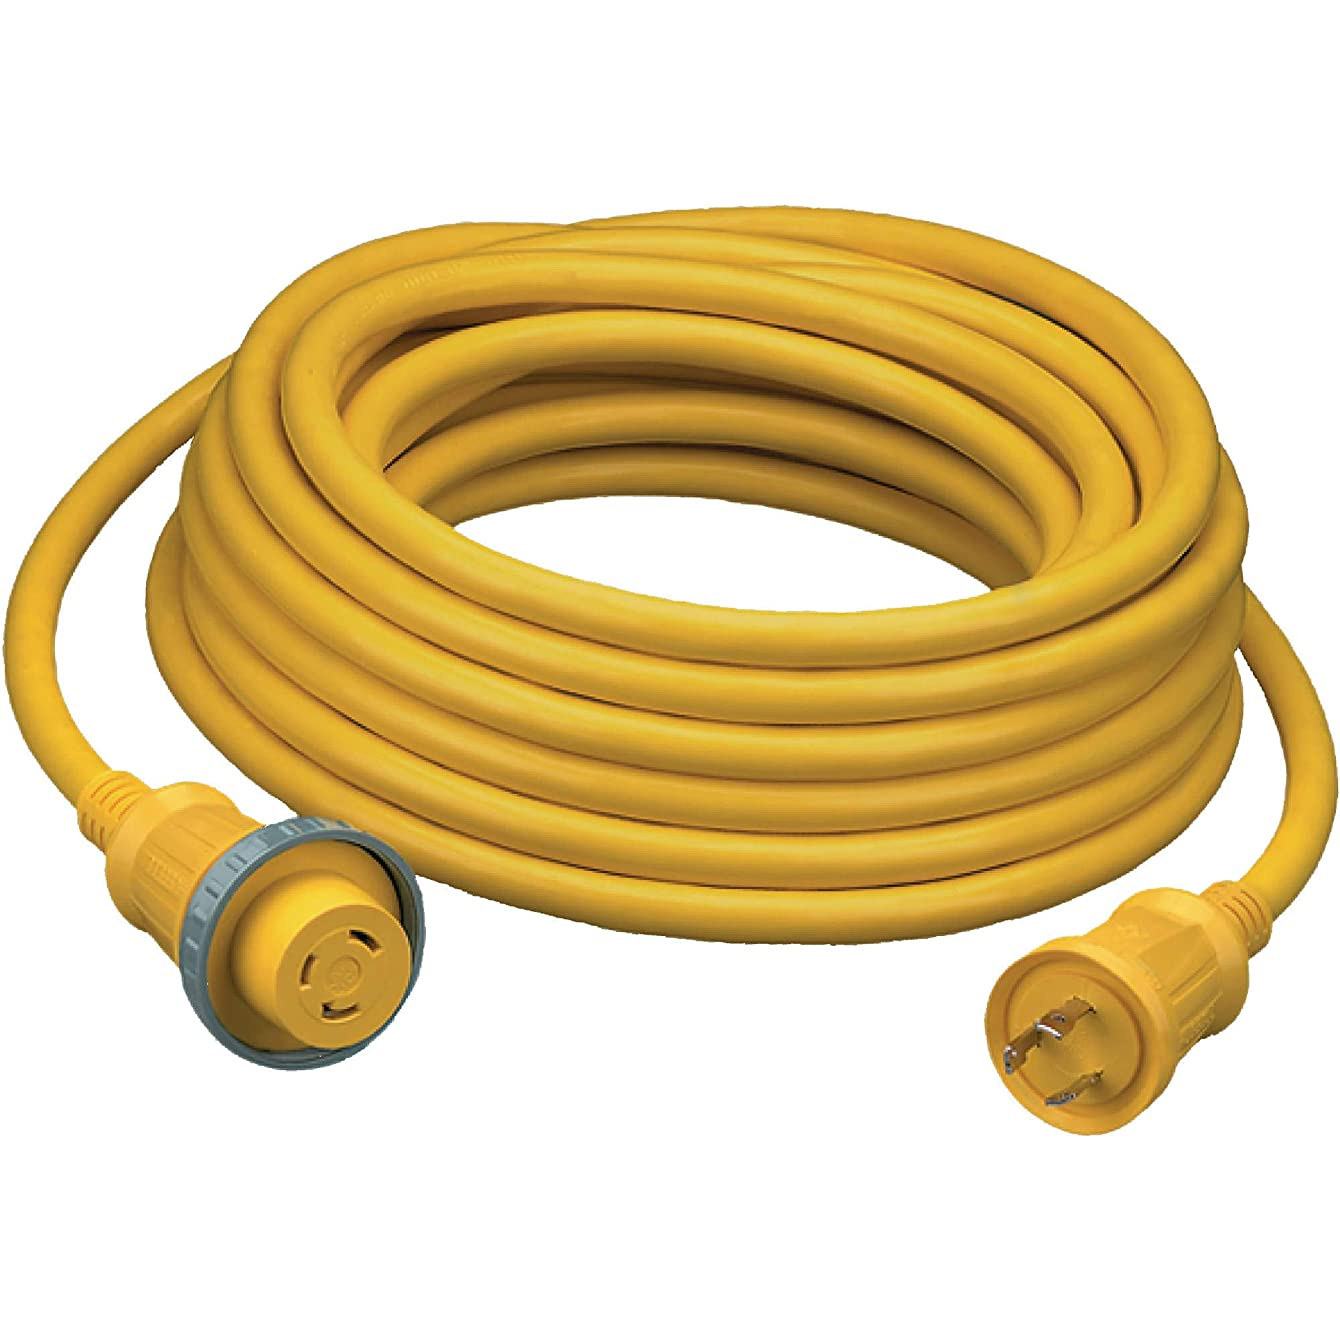 Hubbell HBL61CM03 Marine Cable, 25', 30 amp, 125V, Yellow (Pack of 1)